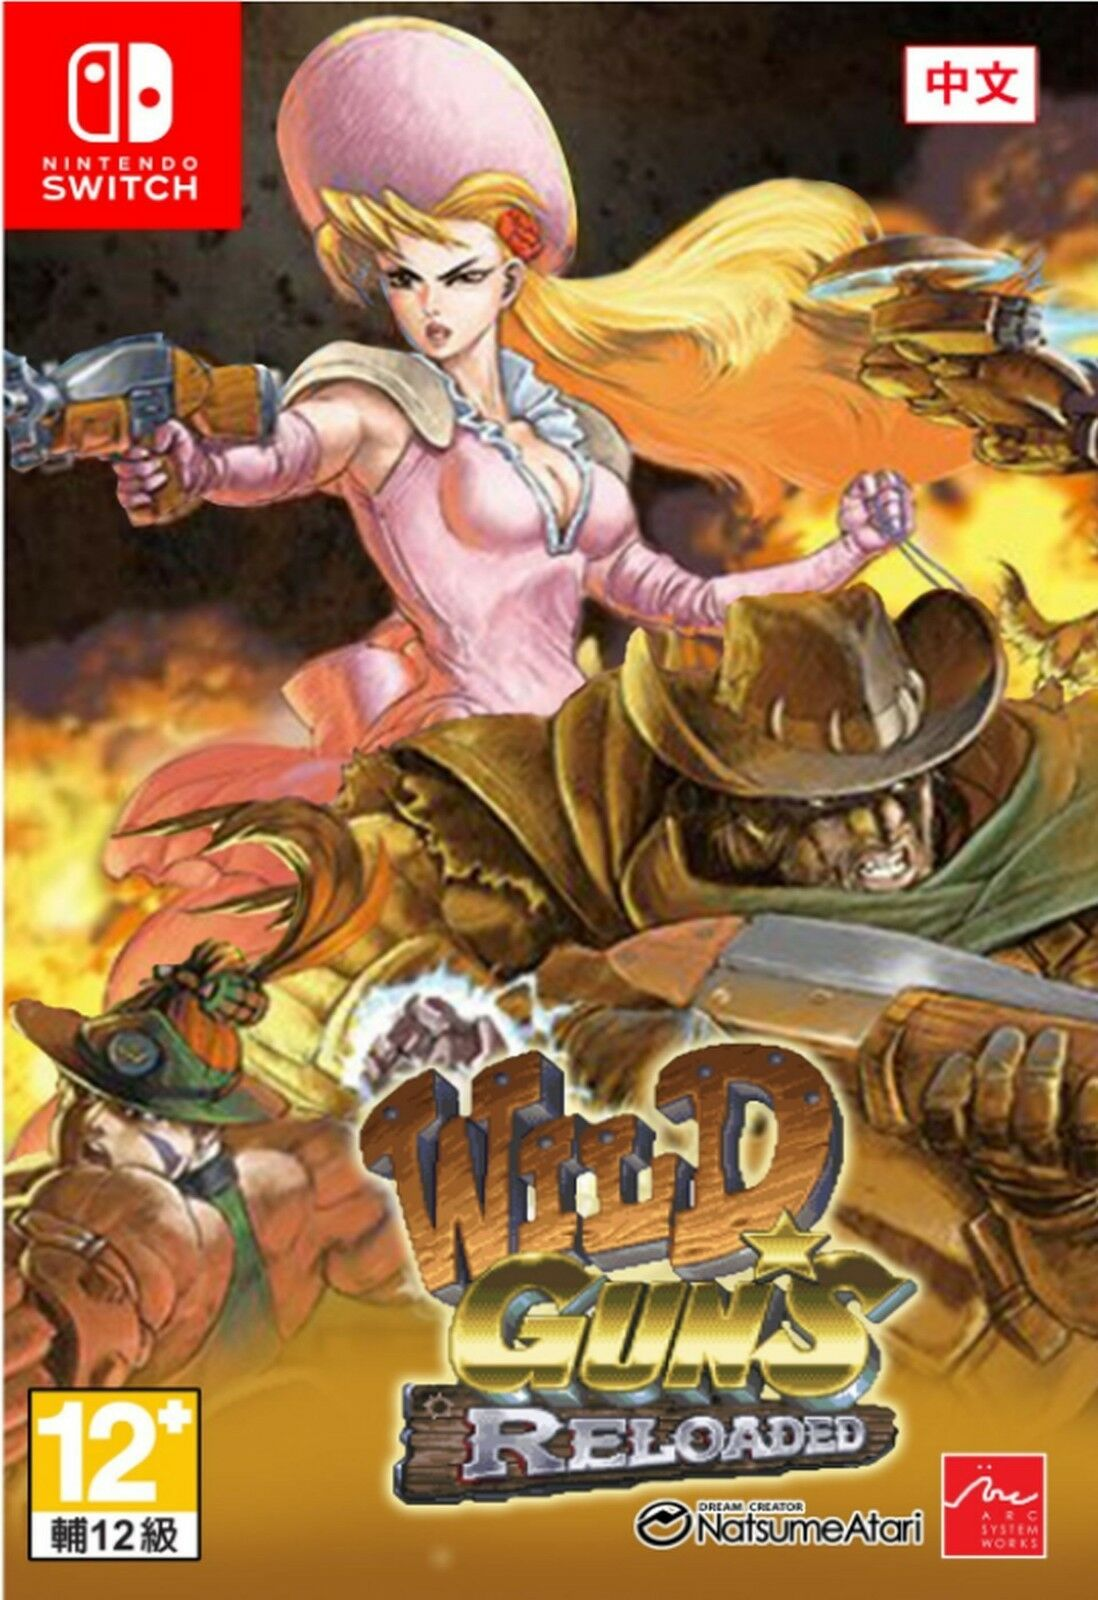 Wild Gu Reloaded Chi Japanese English Ver For Nintendo Switch Ns Pokemon Tournament Dx Us